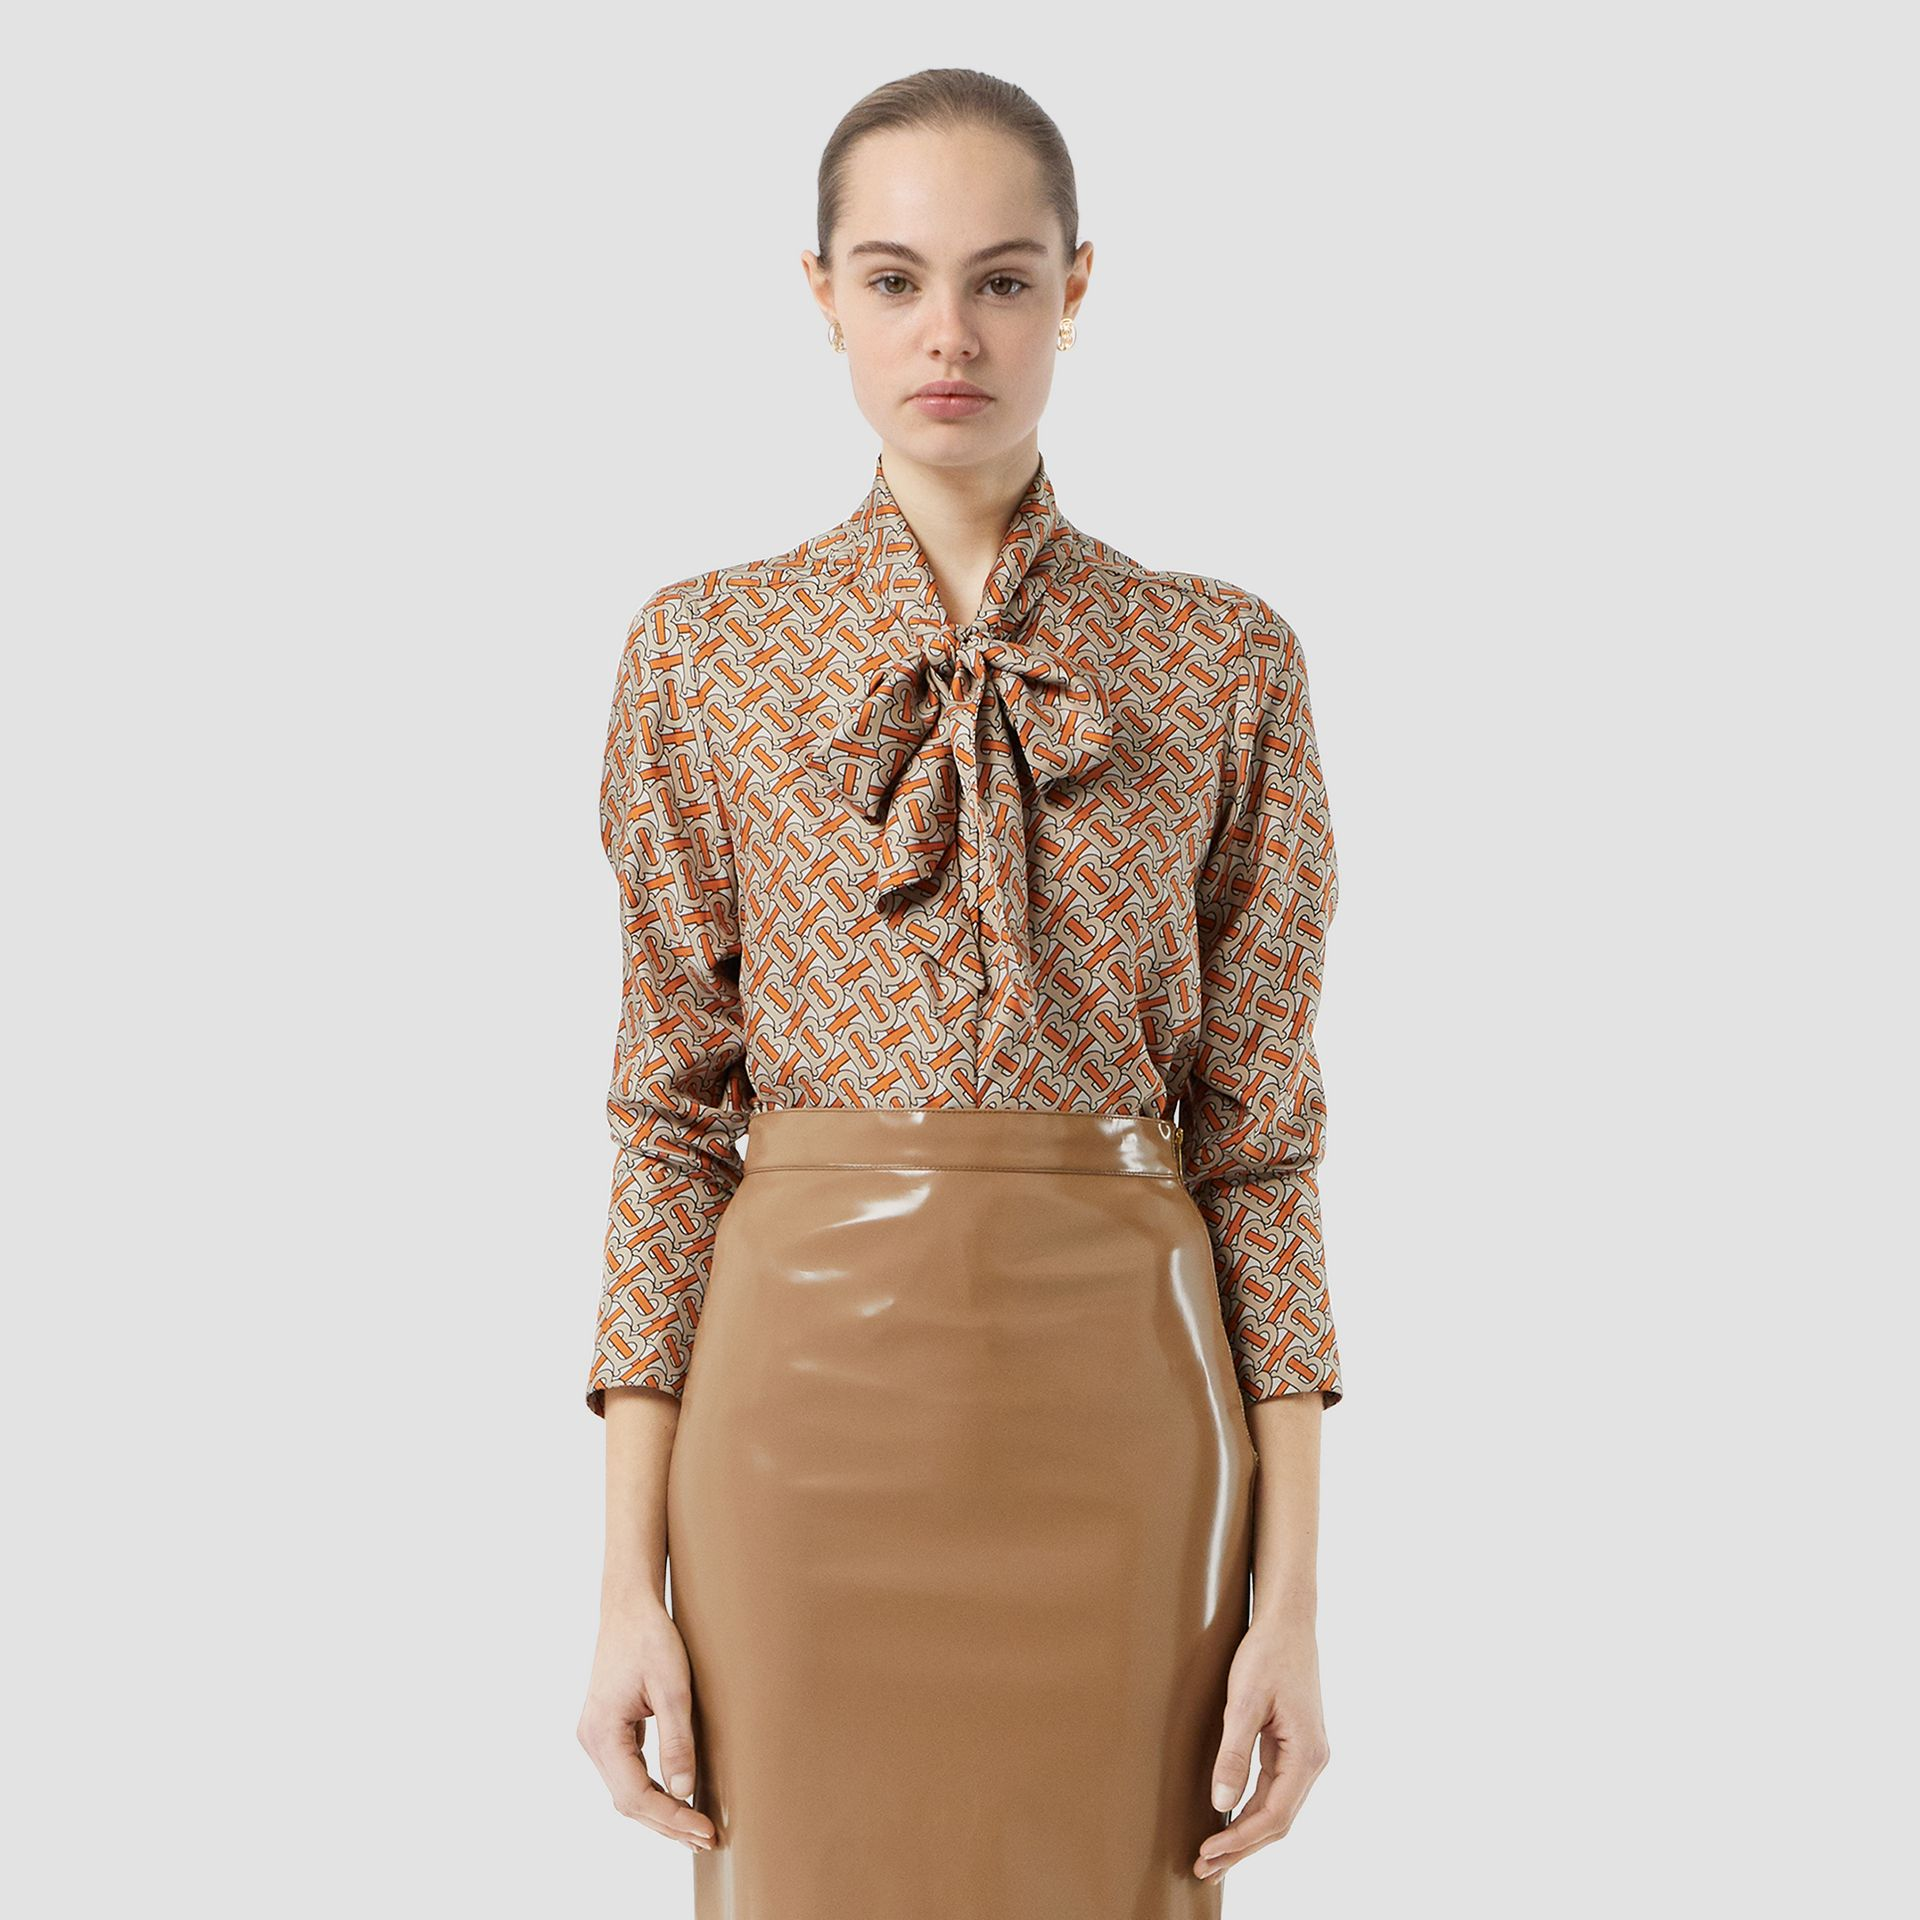 Vinyl Pencil Skirt in Utility Beige - Women | Burberry - gallery image 6